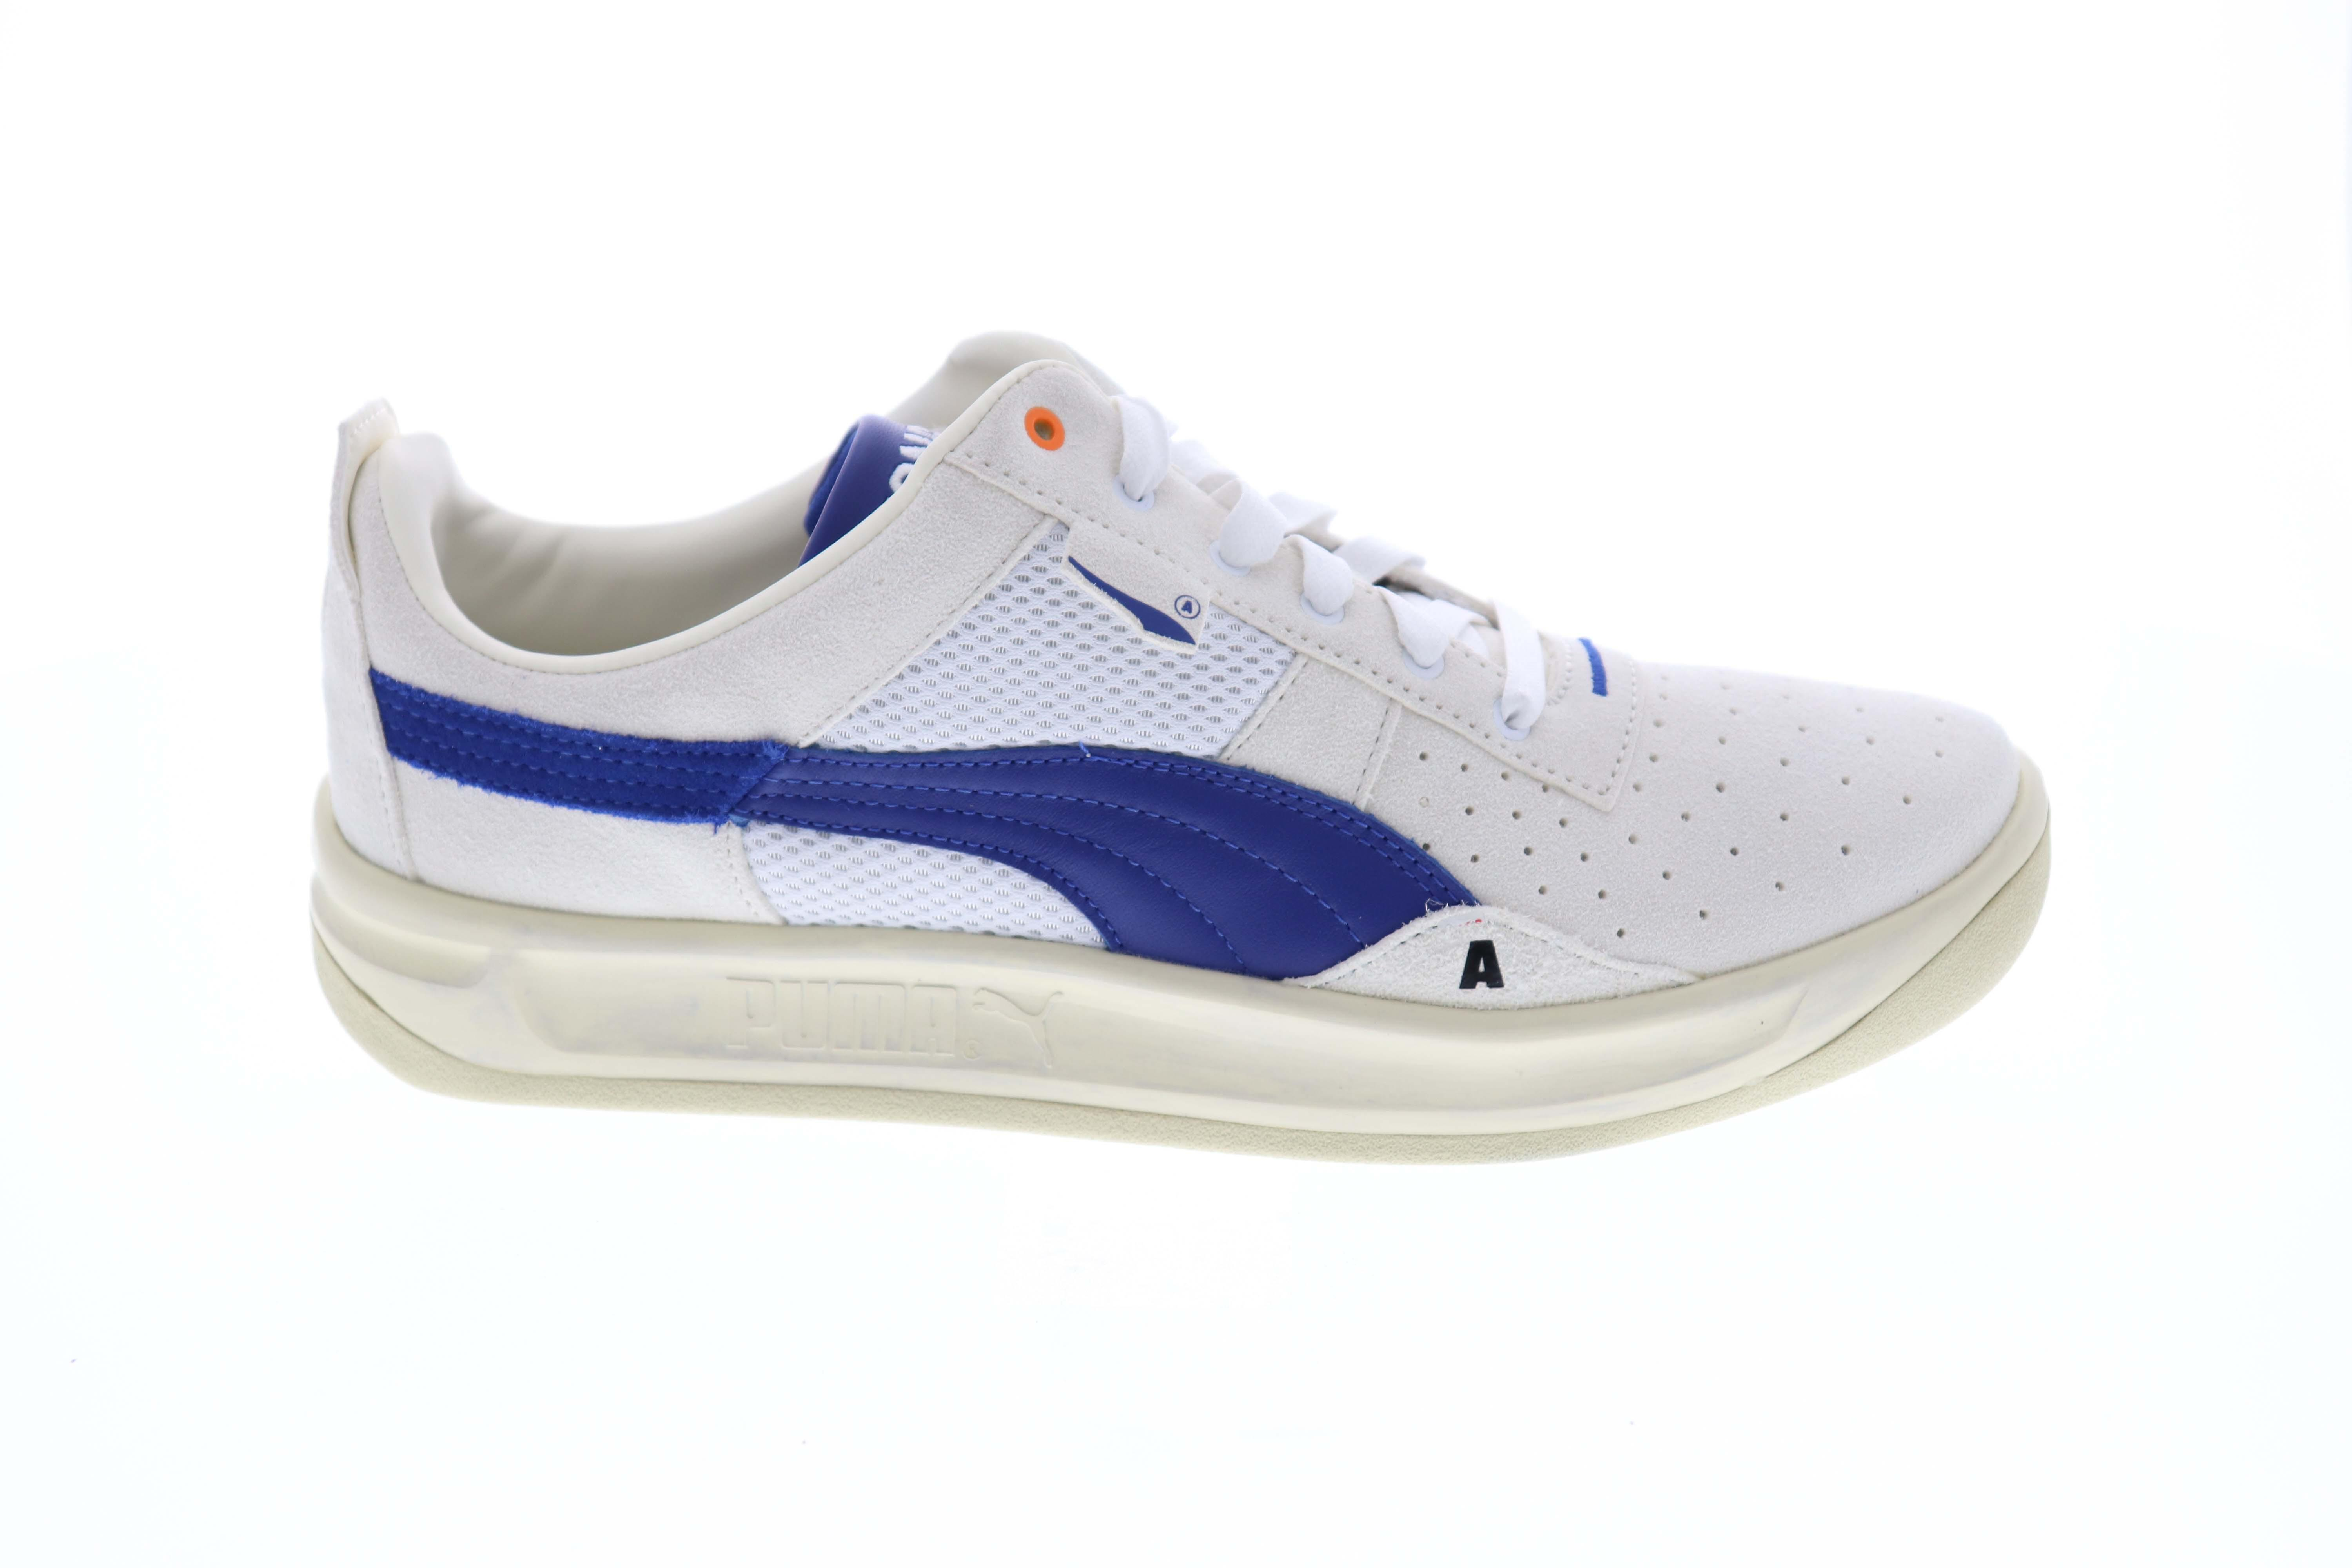 Puma California Ader Error Mens White Classic Low Top Sneakers Shoes